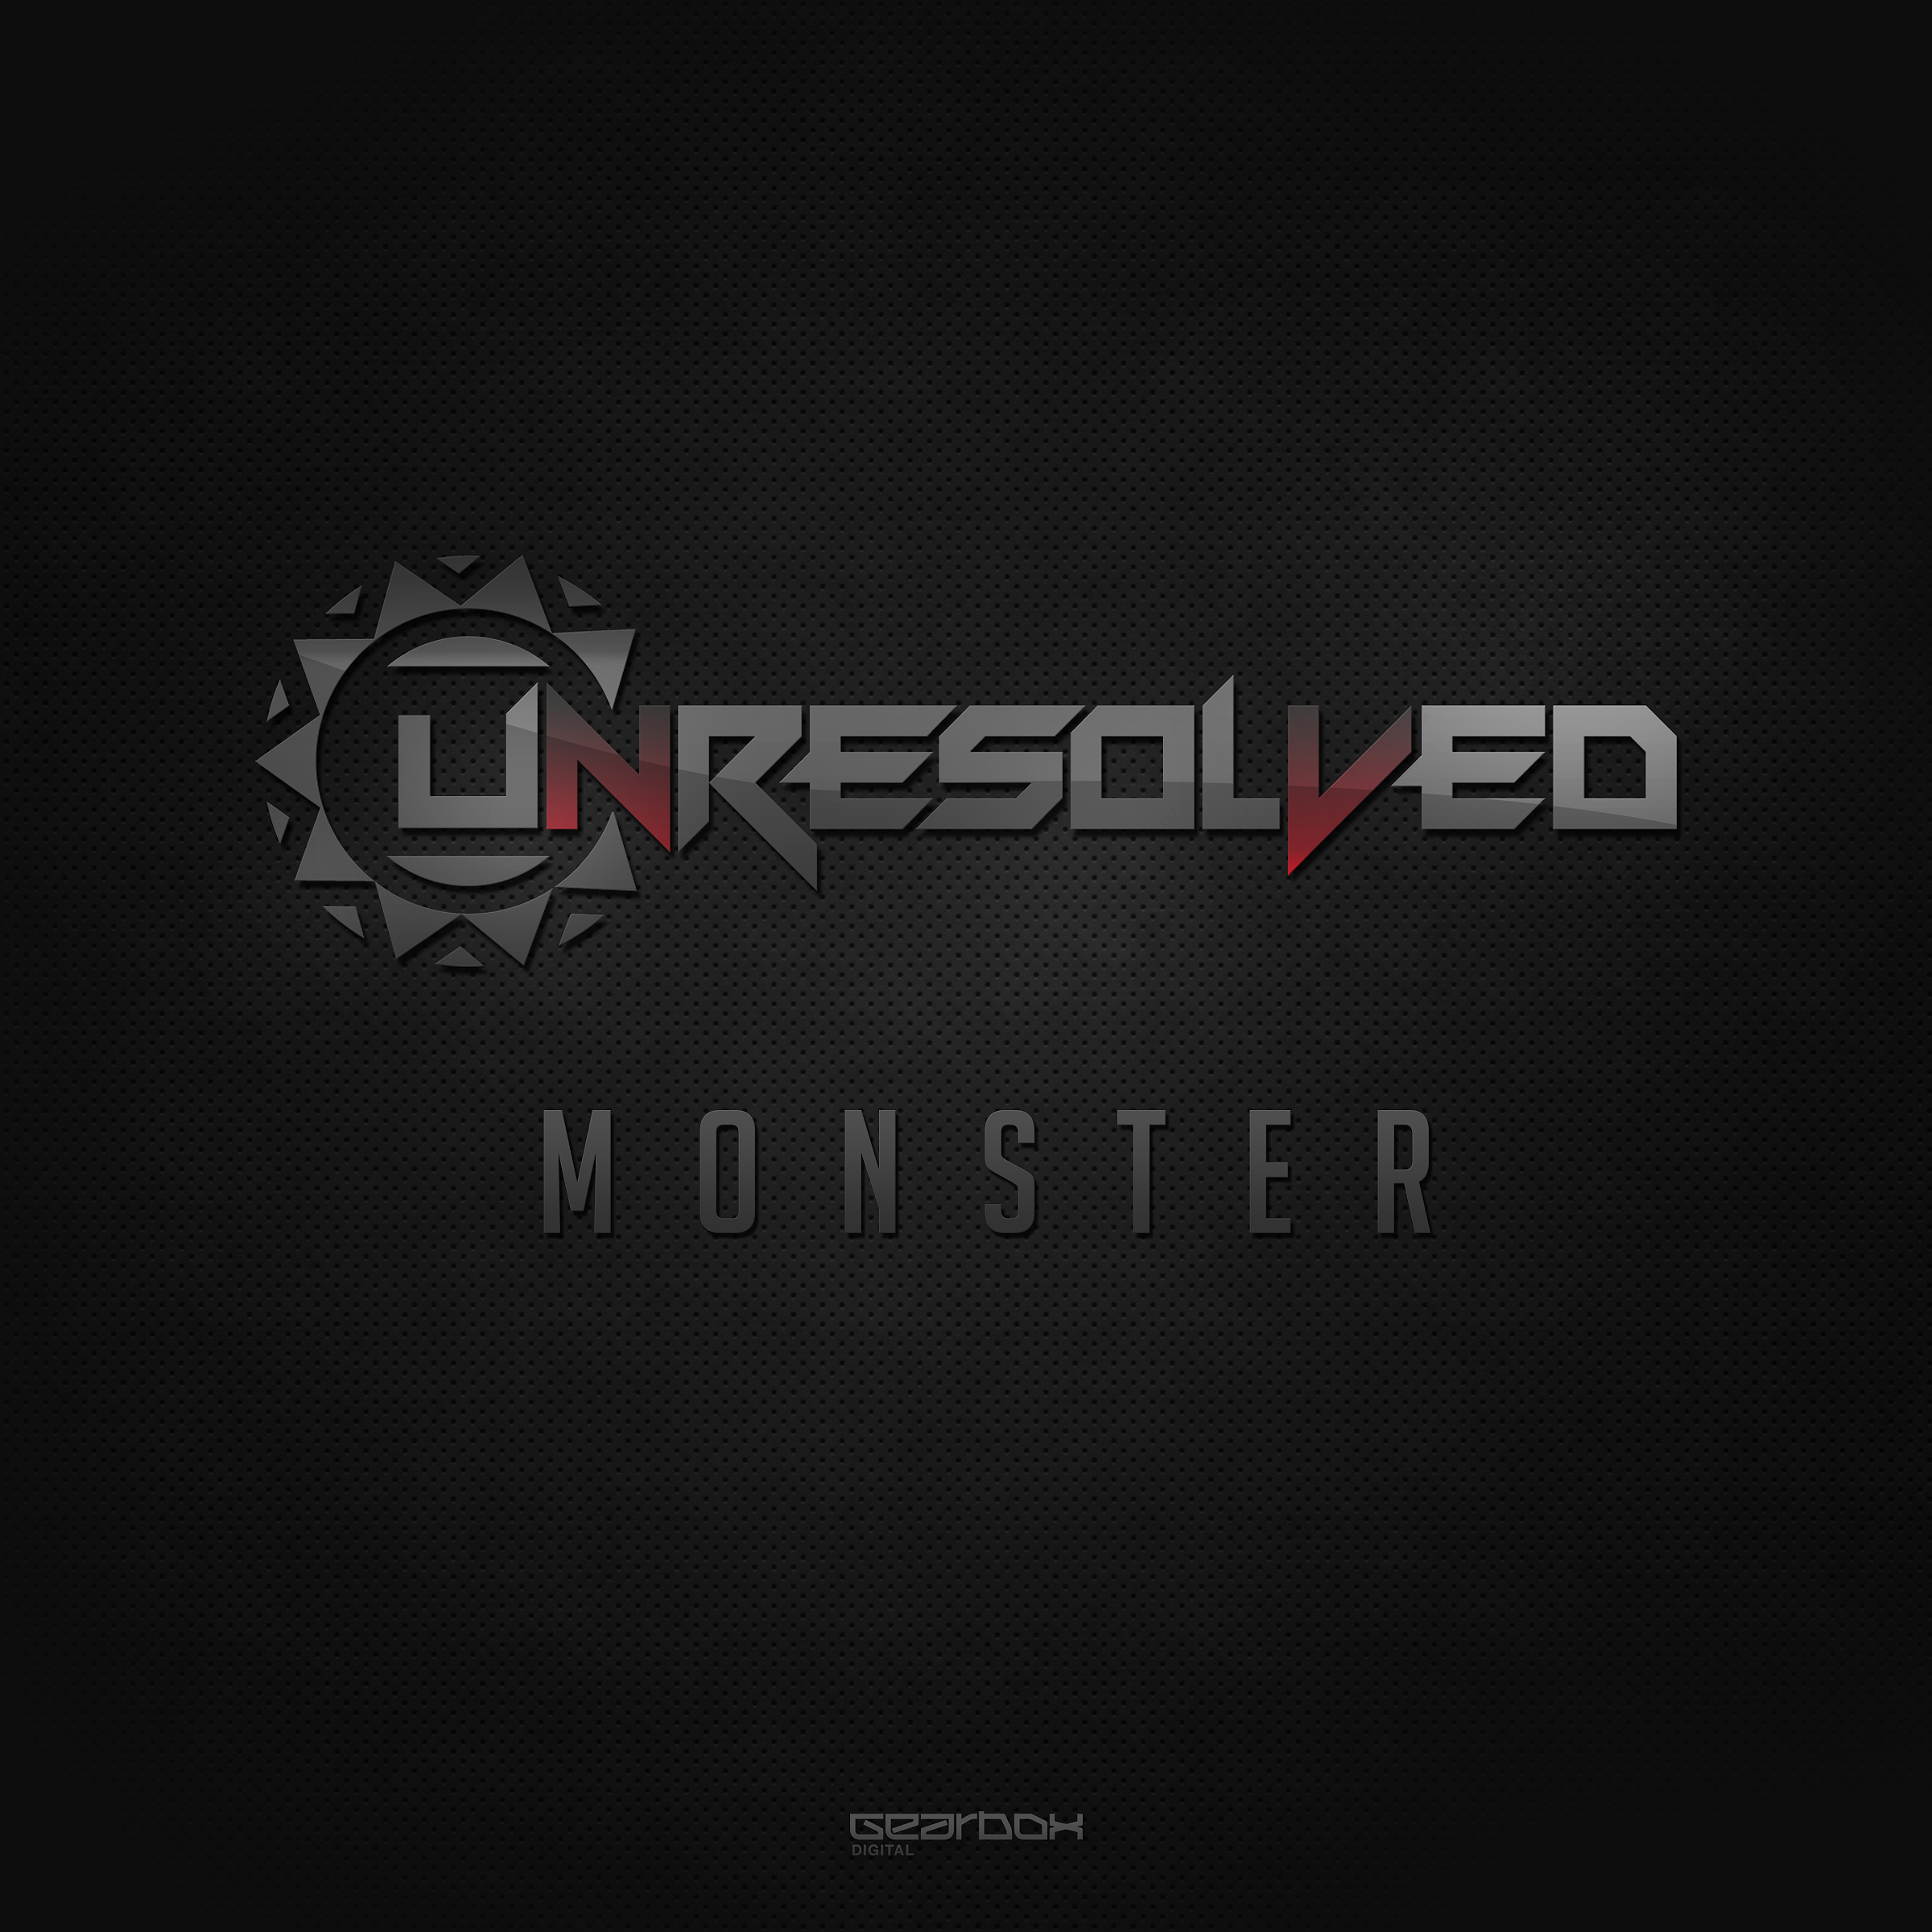 Unresolved - Monster [GEARBOX DIGITAL] GBD177